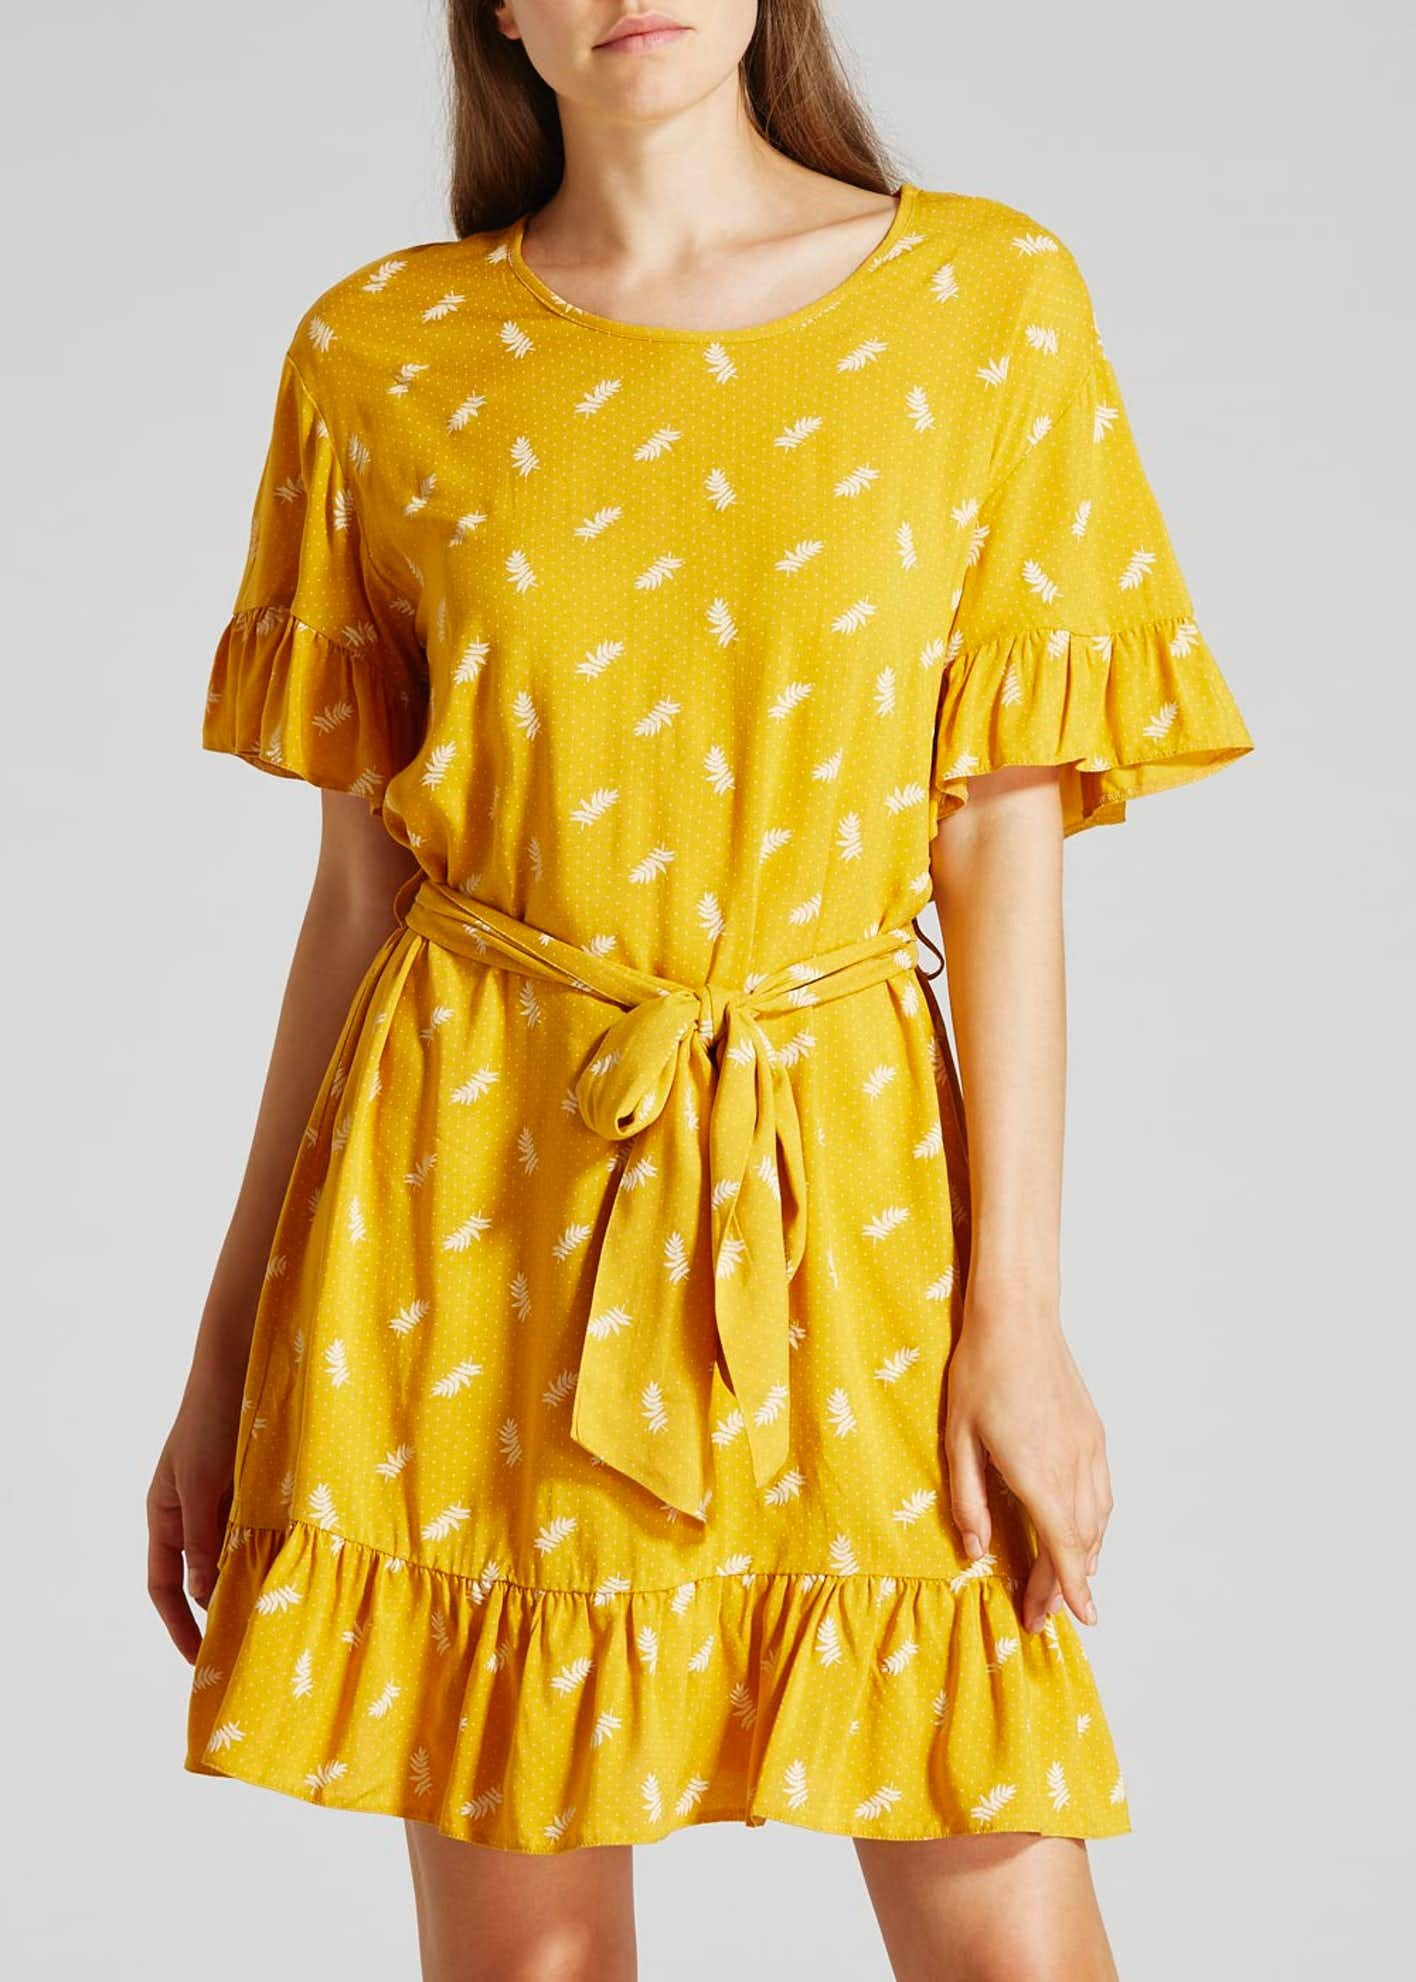 Printed Frill Sleeve Dress - Yellow